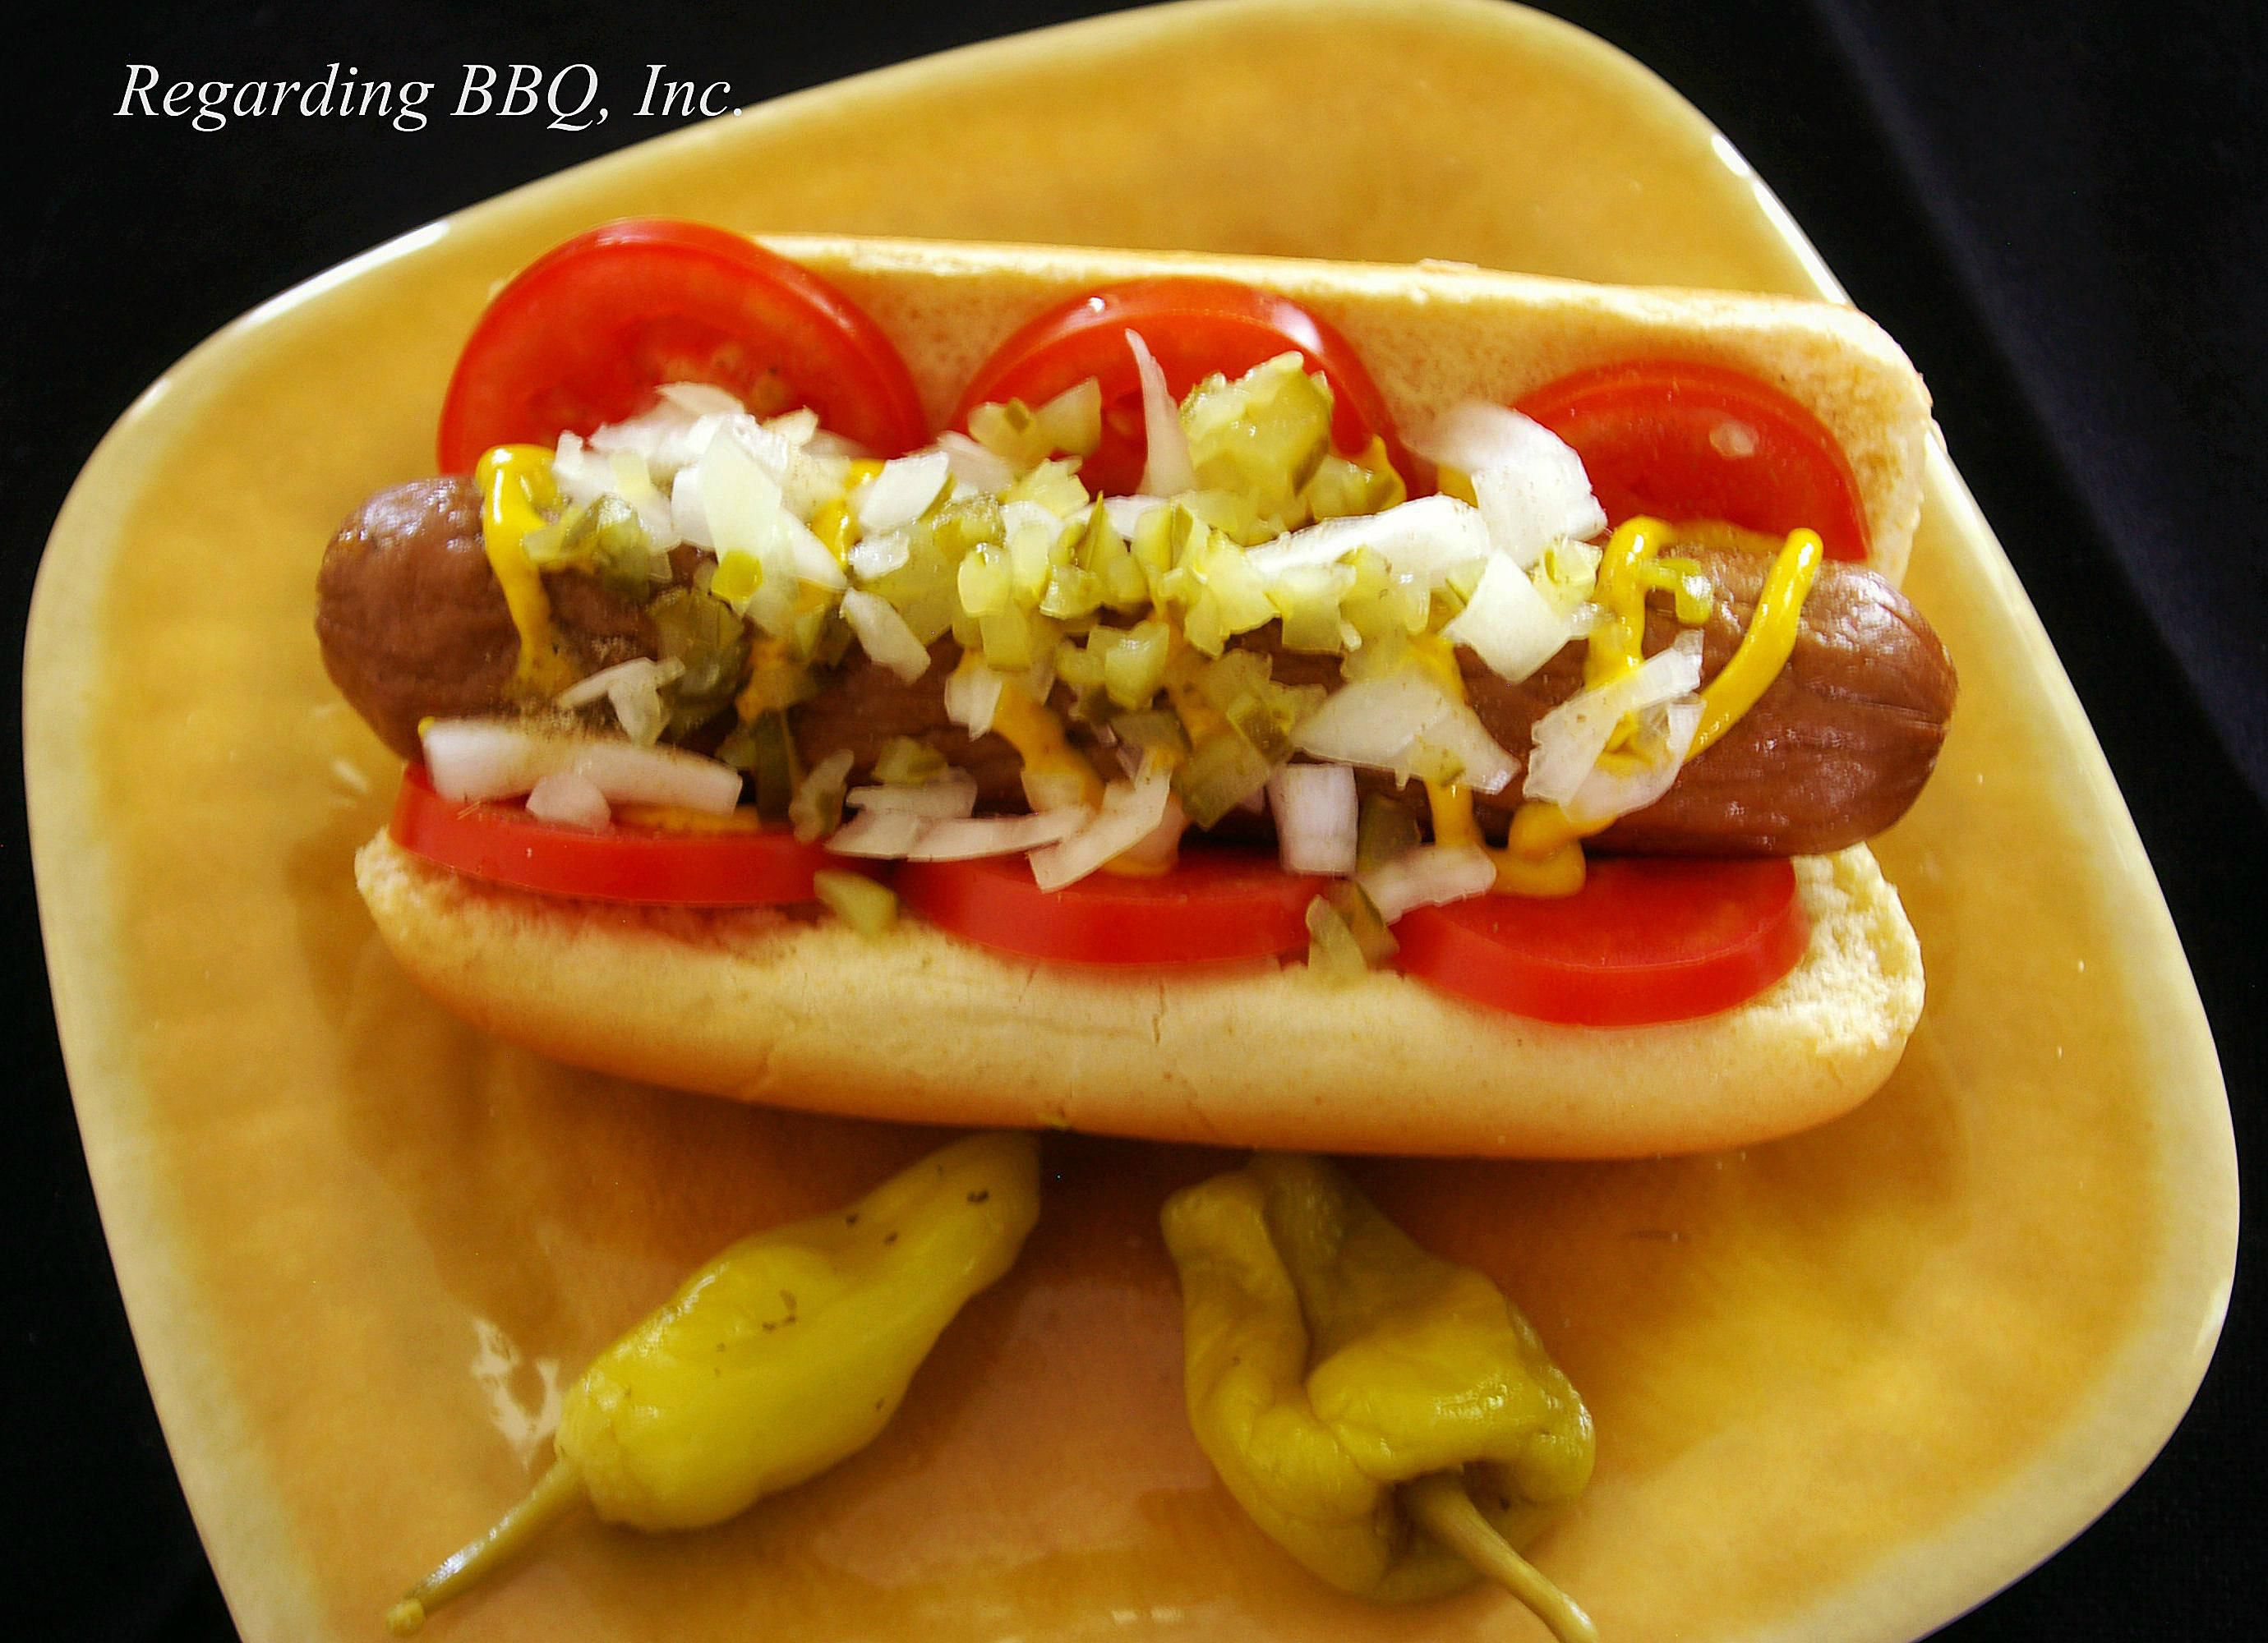 Grilled Hot Dogs In The House